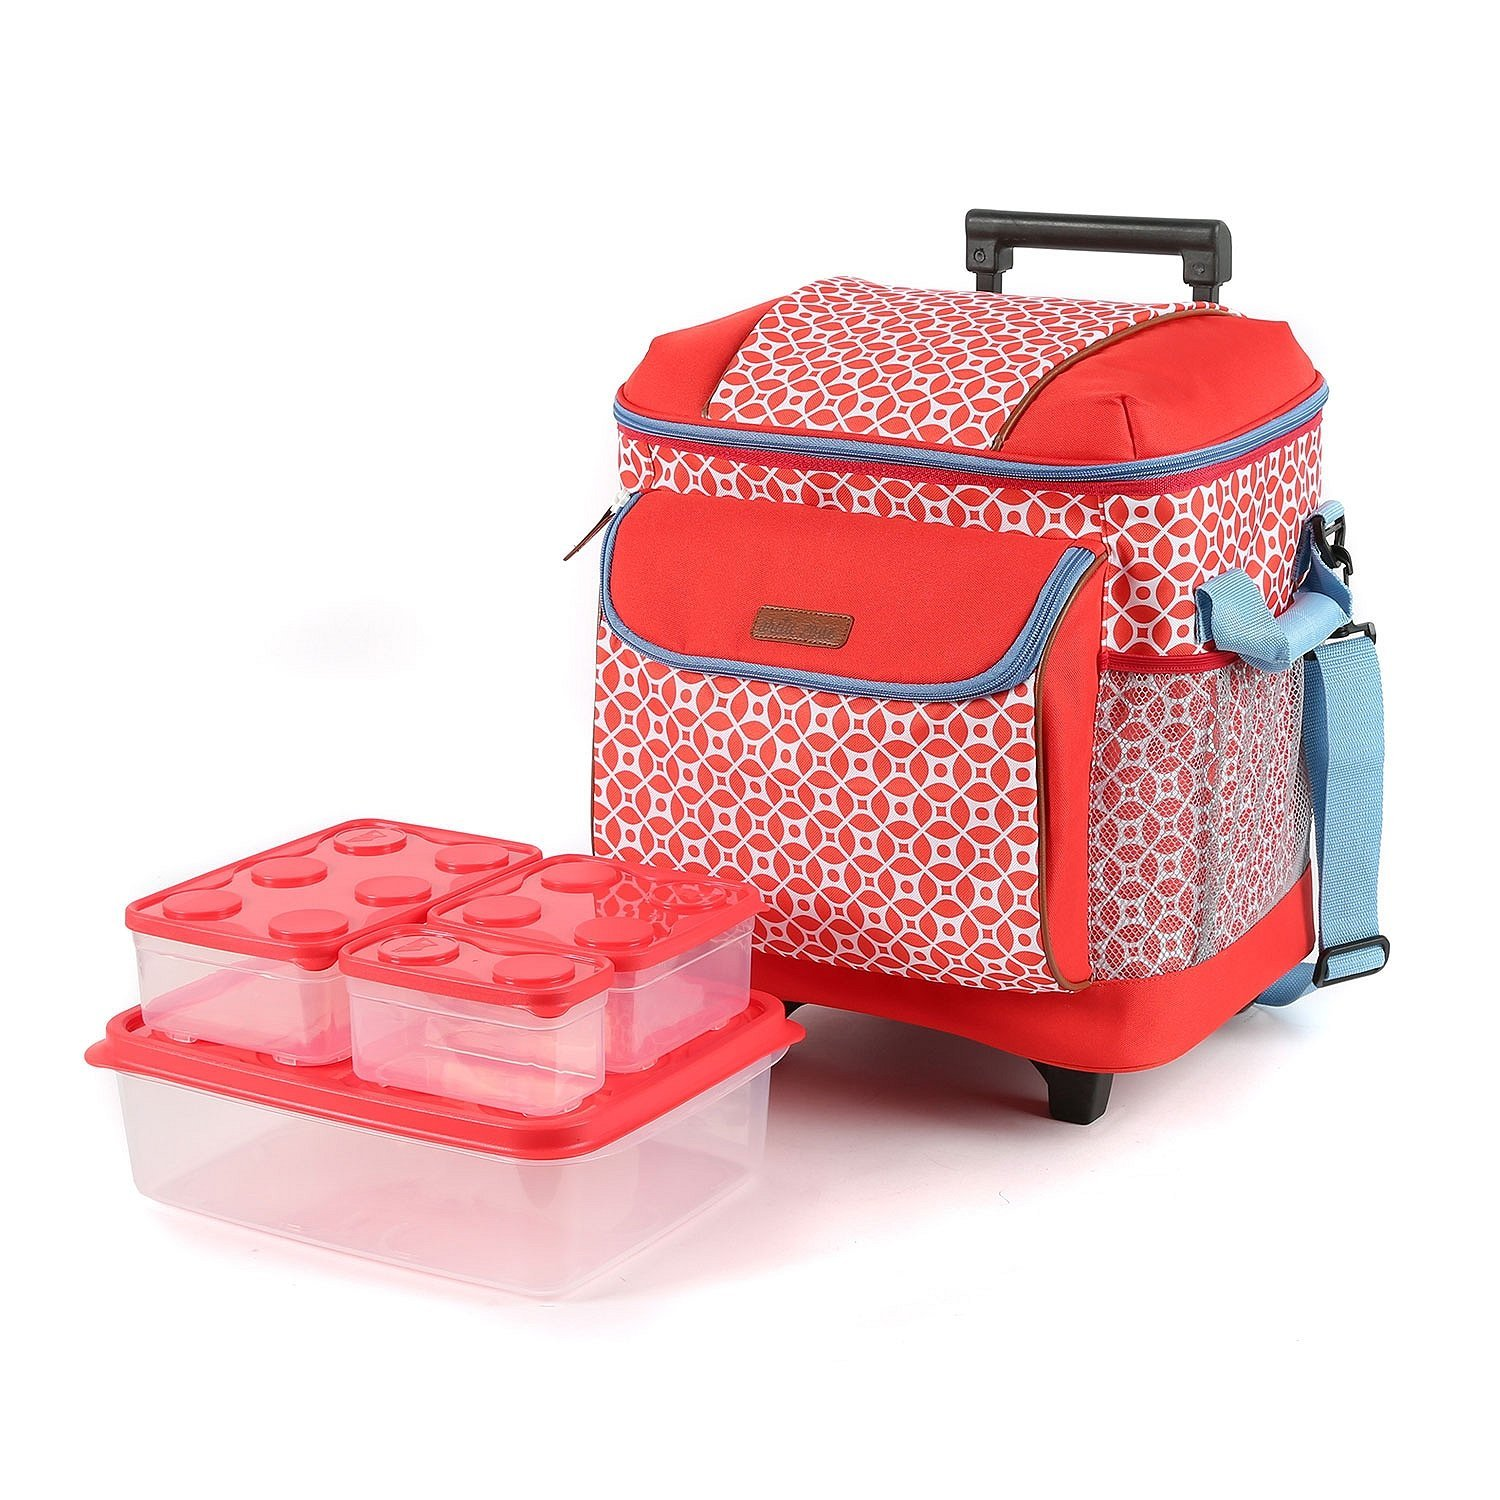 Insulated Rolling Tote, Retro-rific (Coral), Includes Interlockers Eight-Piece Food Container Set 4.9L jumbo container 1.31 large container.., By Arctic Zone